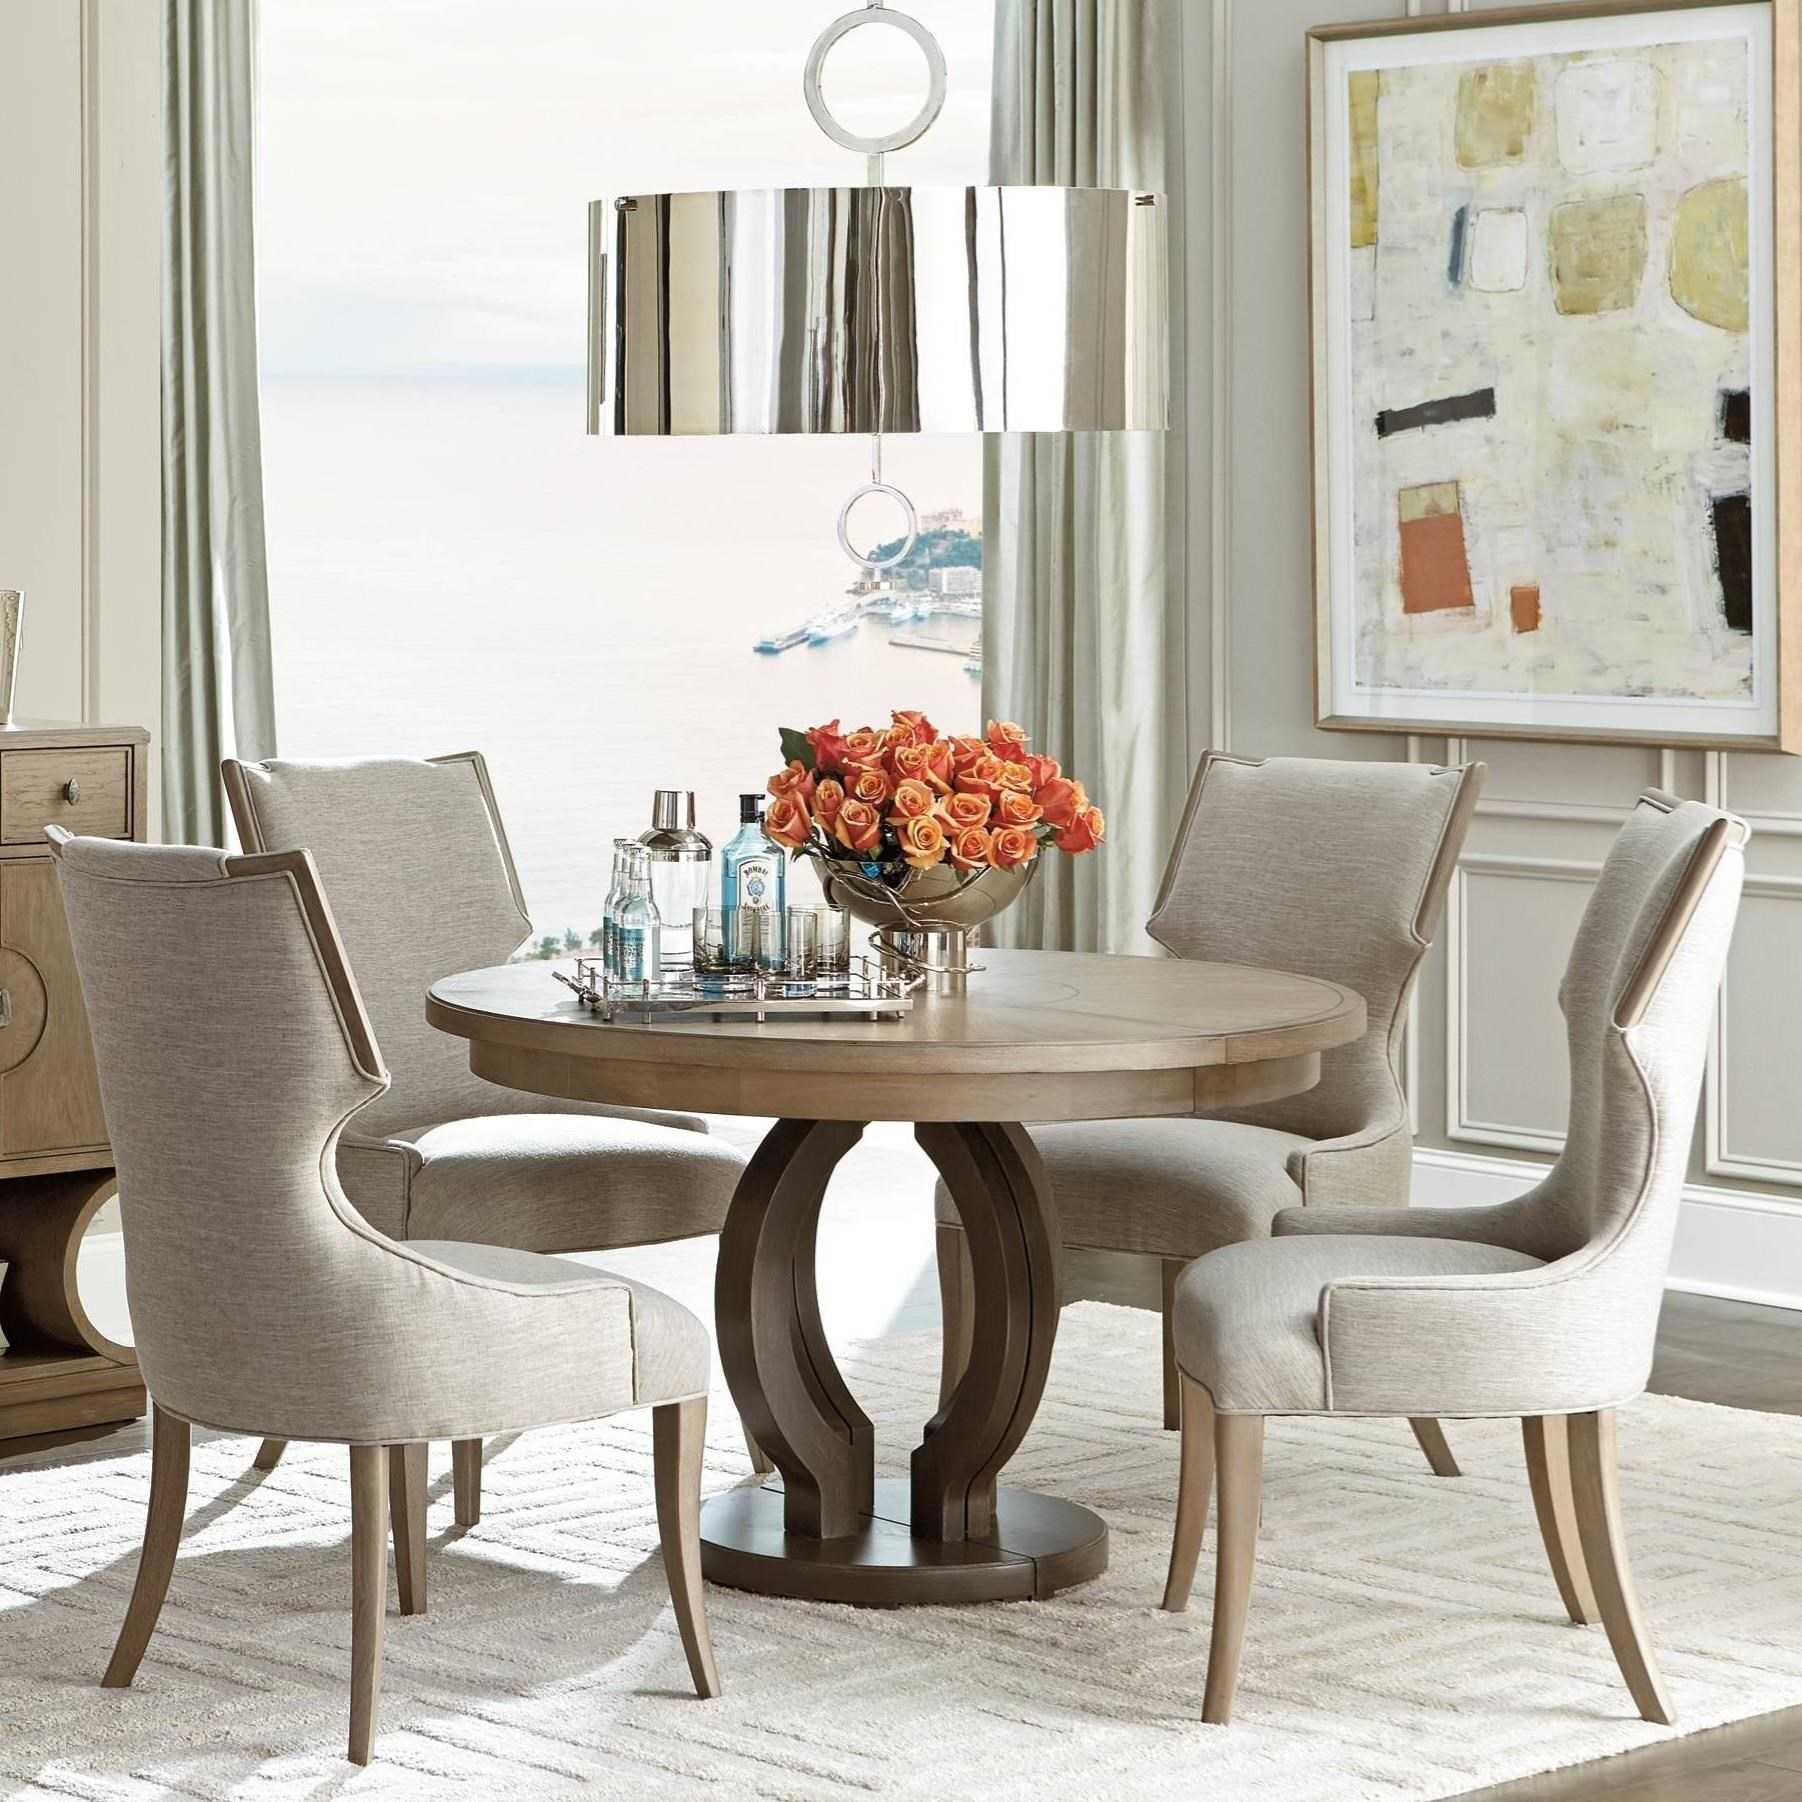 Stanley furniture virage piece round dining table set